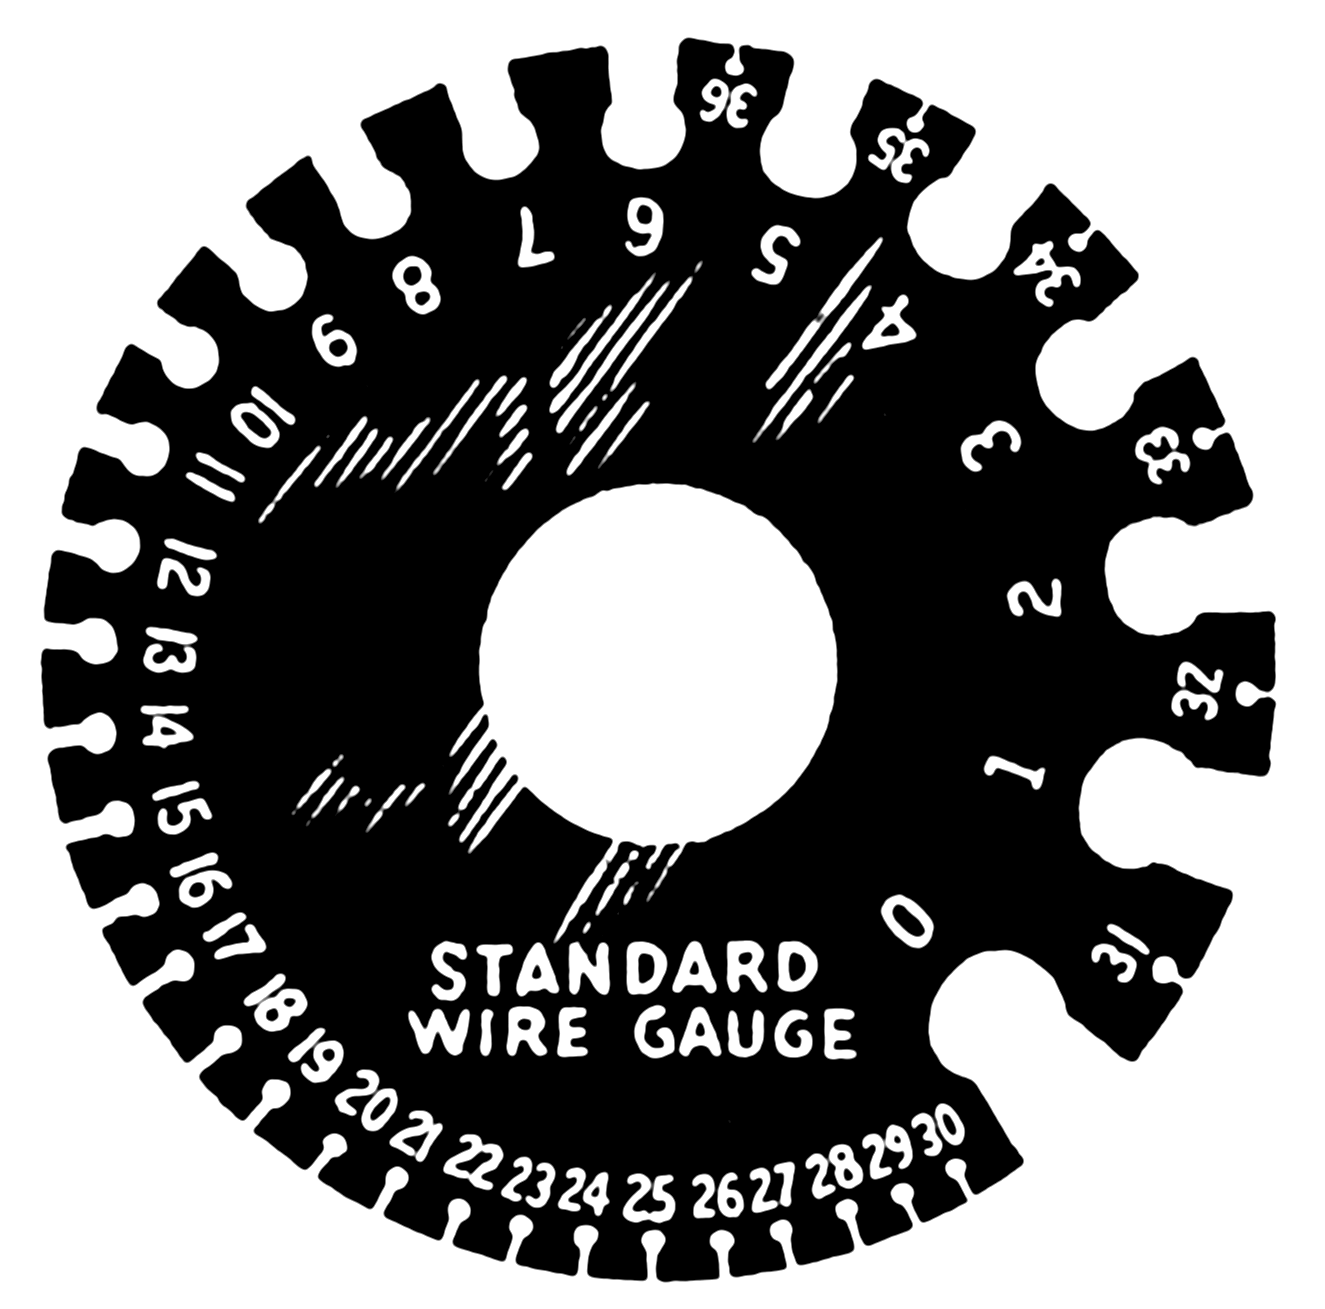 Marine wire and cable marine wire size calculation how to calculate the correct marine wire size keyboard keysfo